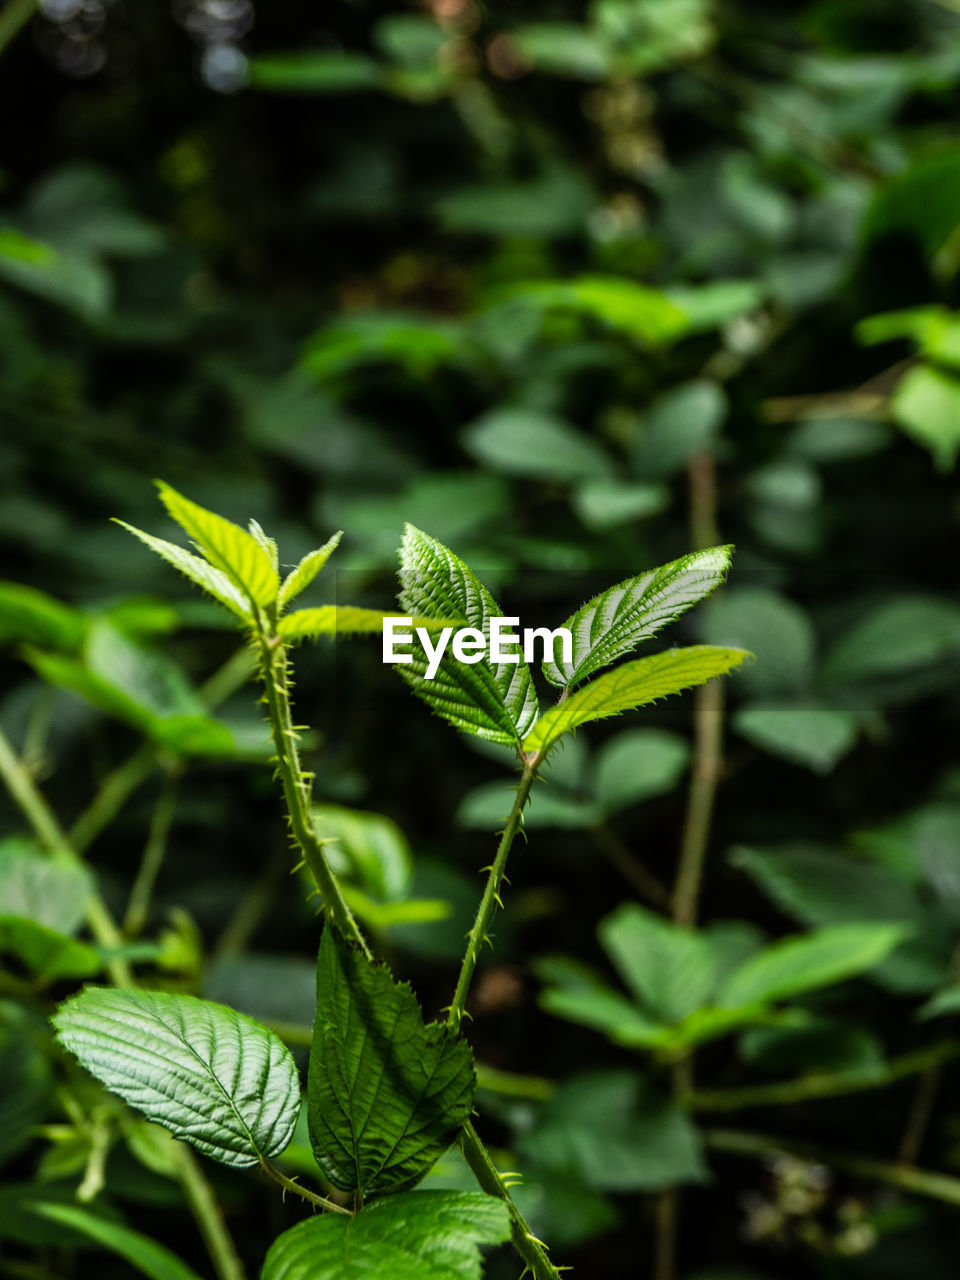 growth, green color, leaf, plant part, plant, beauty in nature, nature, close-up, day, no people, focus on foreground, outdoors, freshness, tranquility, selective focus, field, vulnerability, land, fragility, herb, leaves